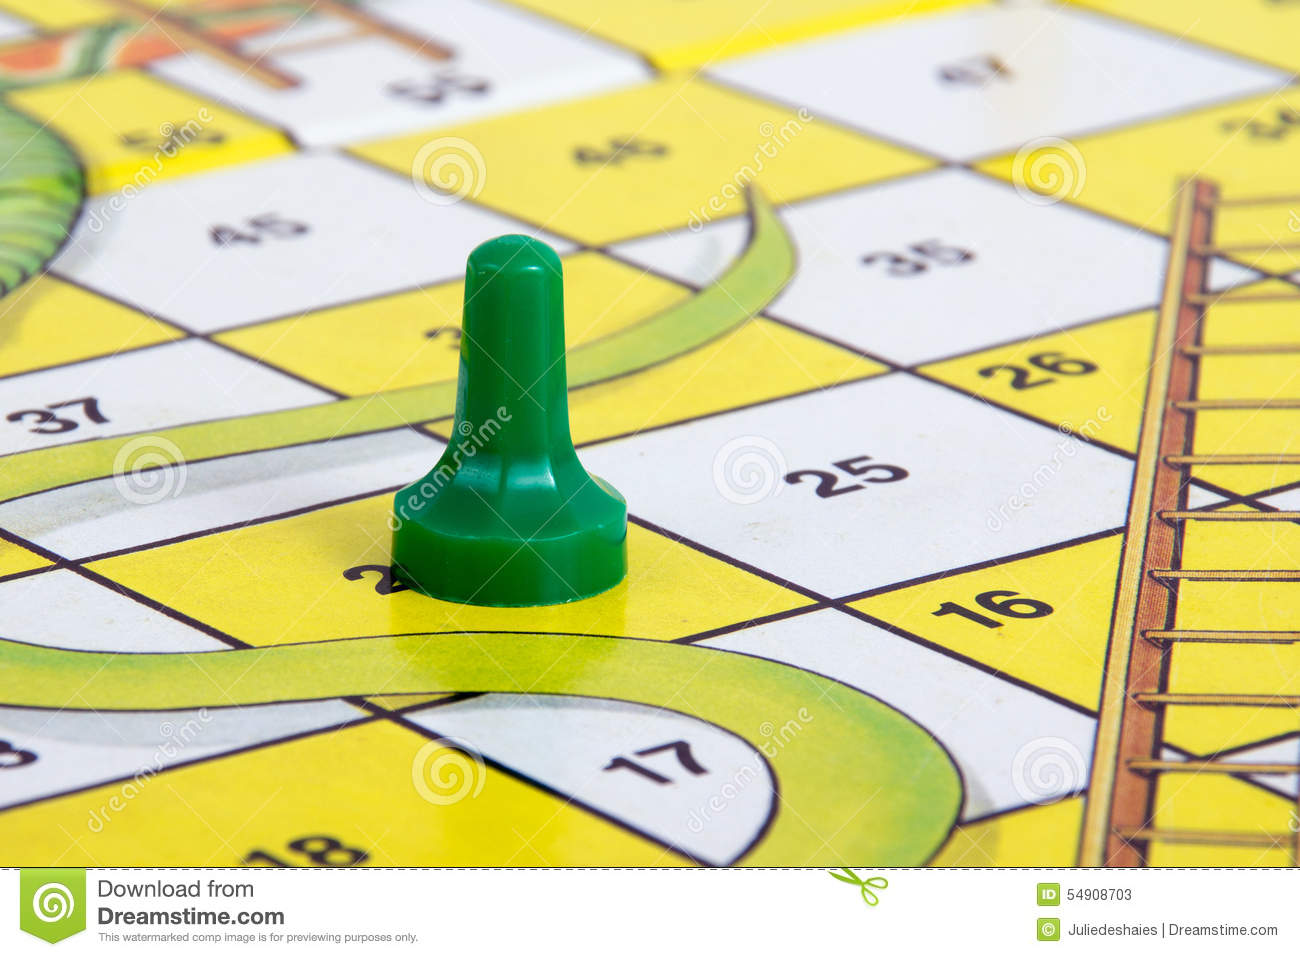 Pictures images snakes and ladders board game template wallpaper - Snake And Ladder Board Game Stock Photos